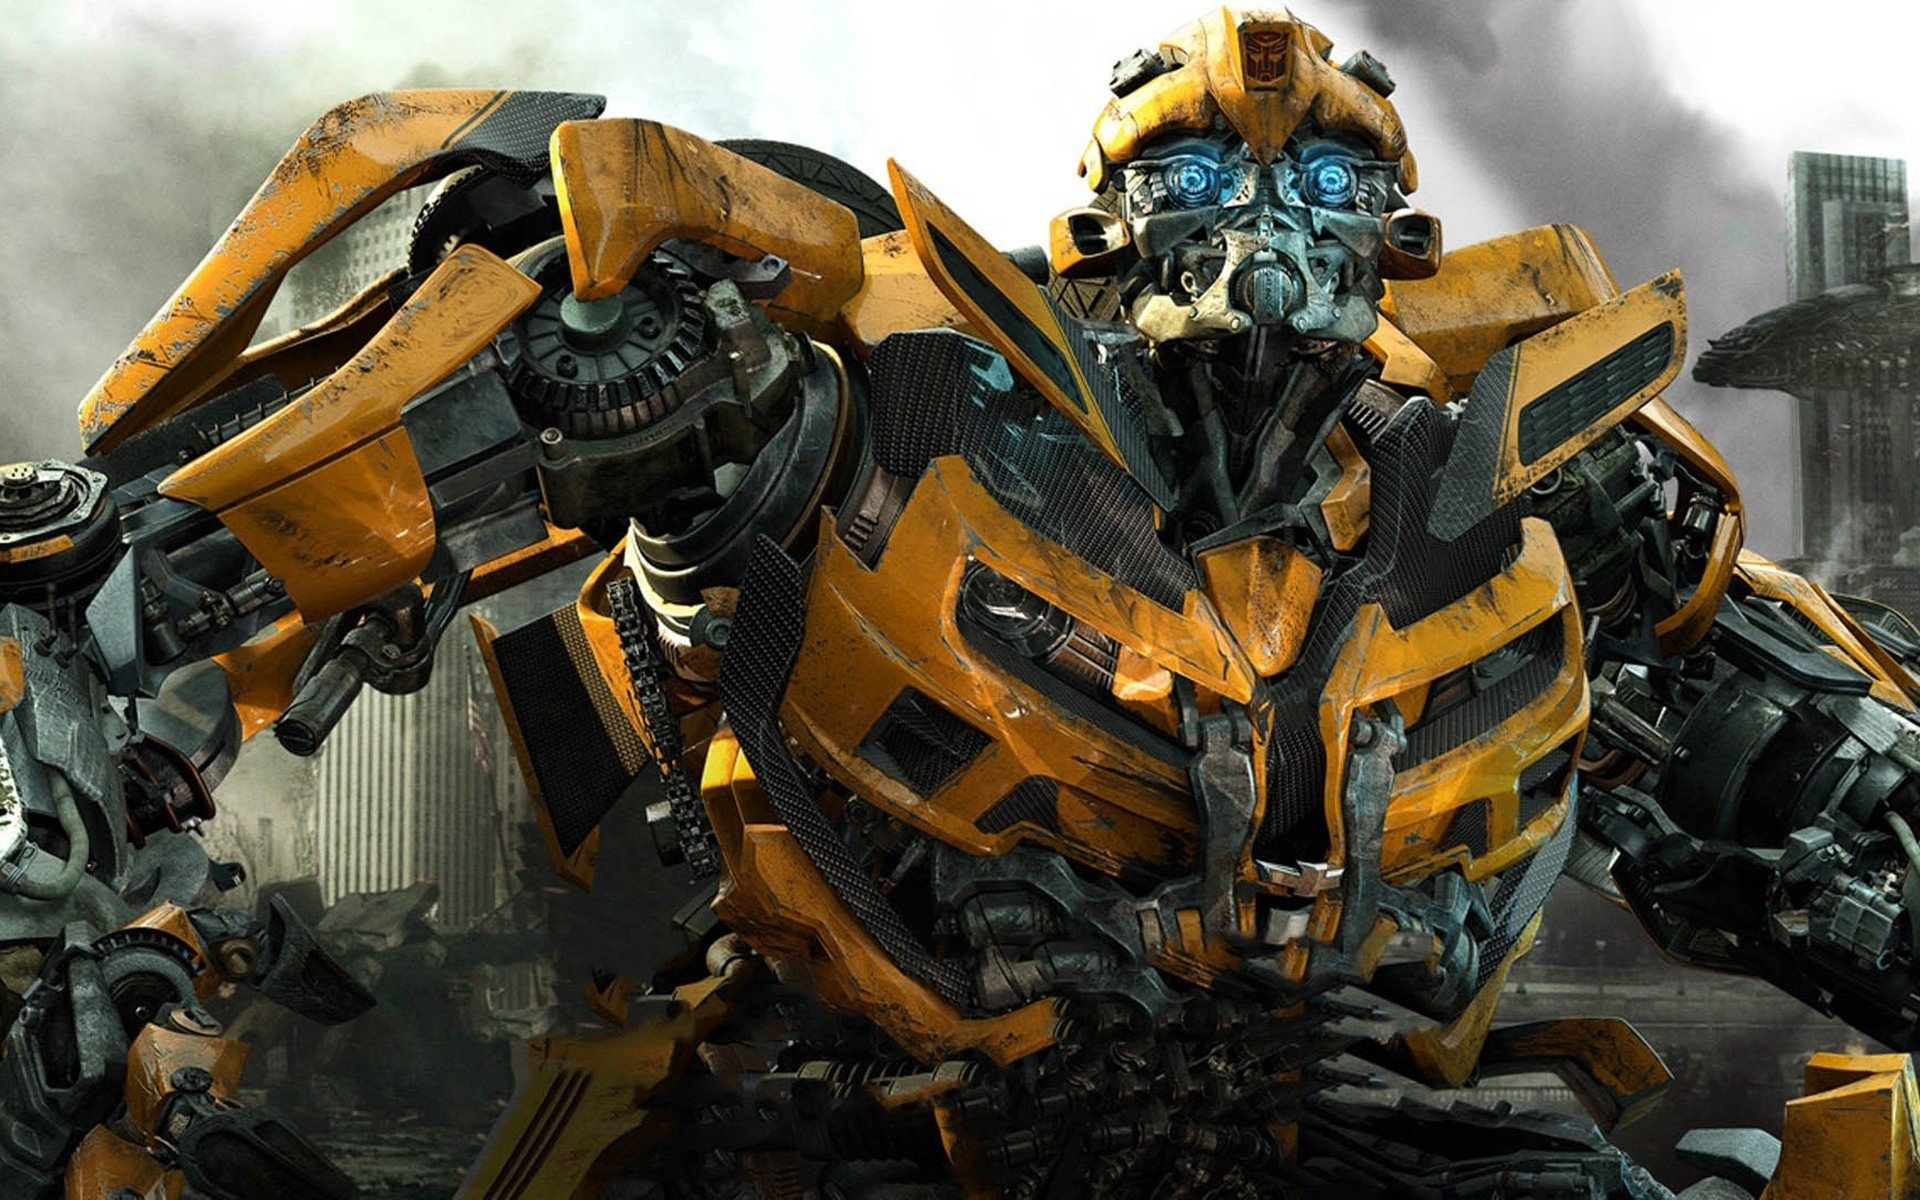 Transformers Bumblebee Wallpaper 68 Pictures